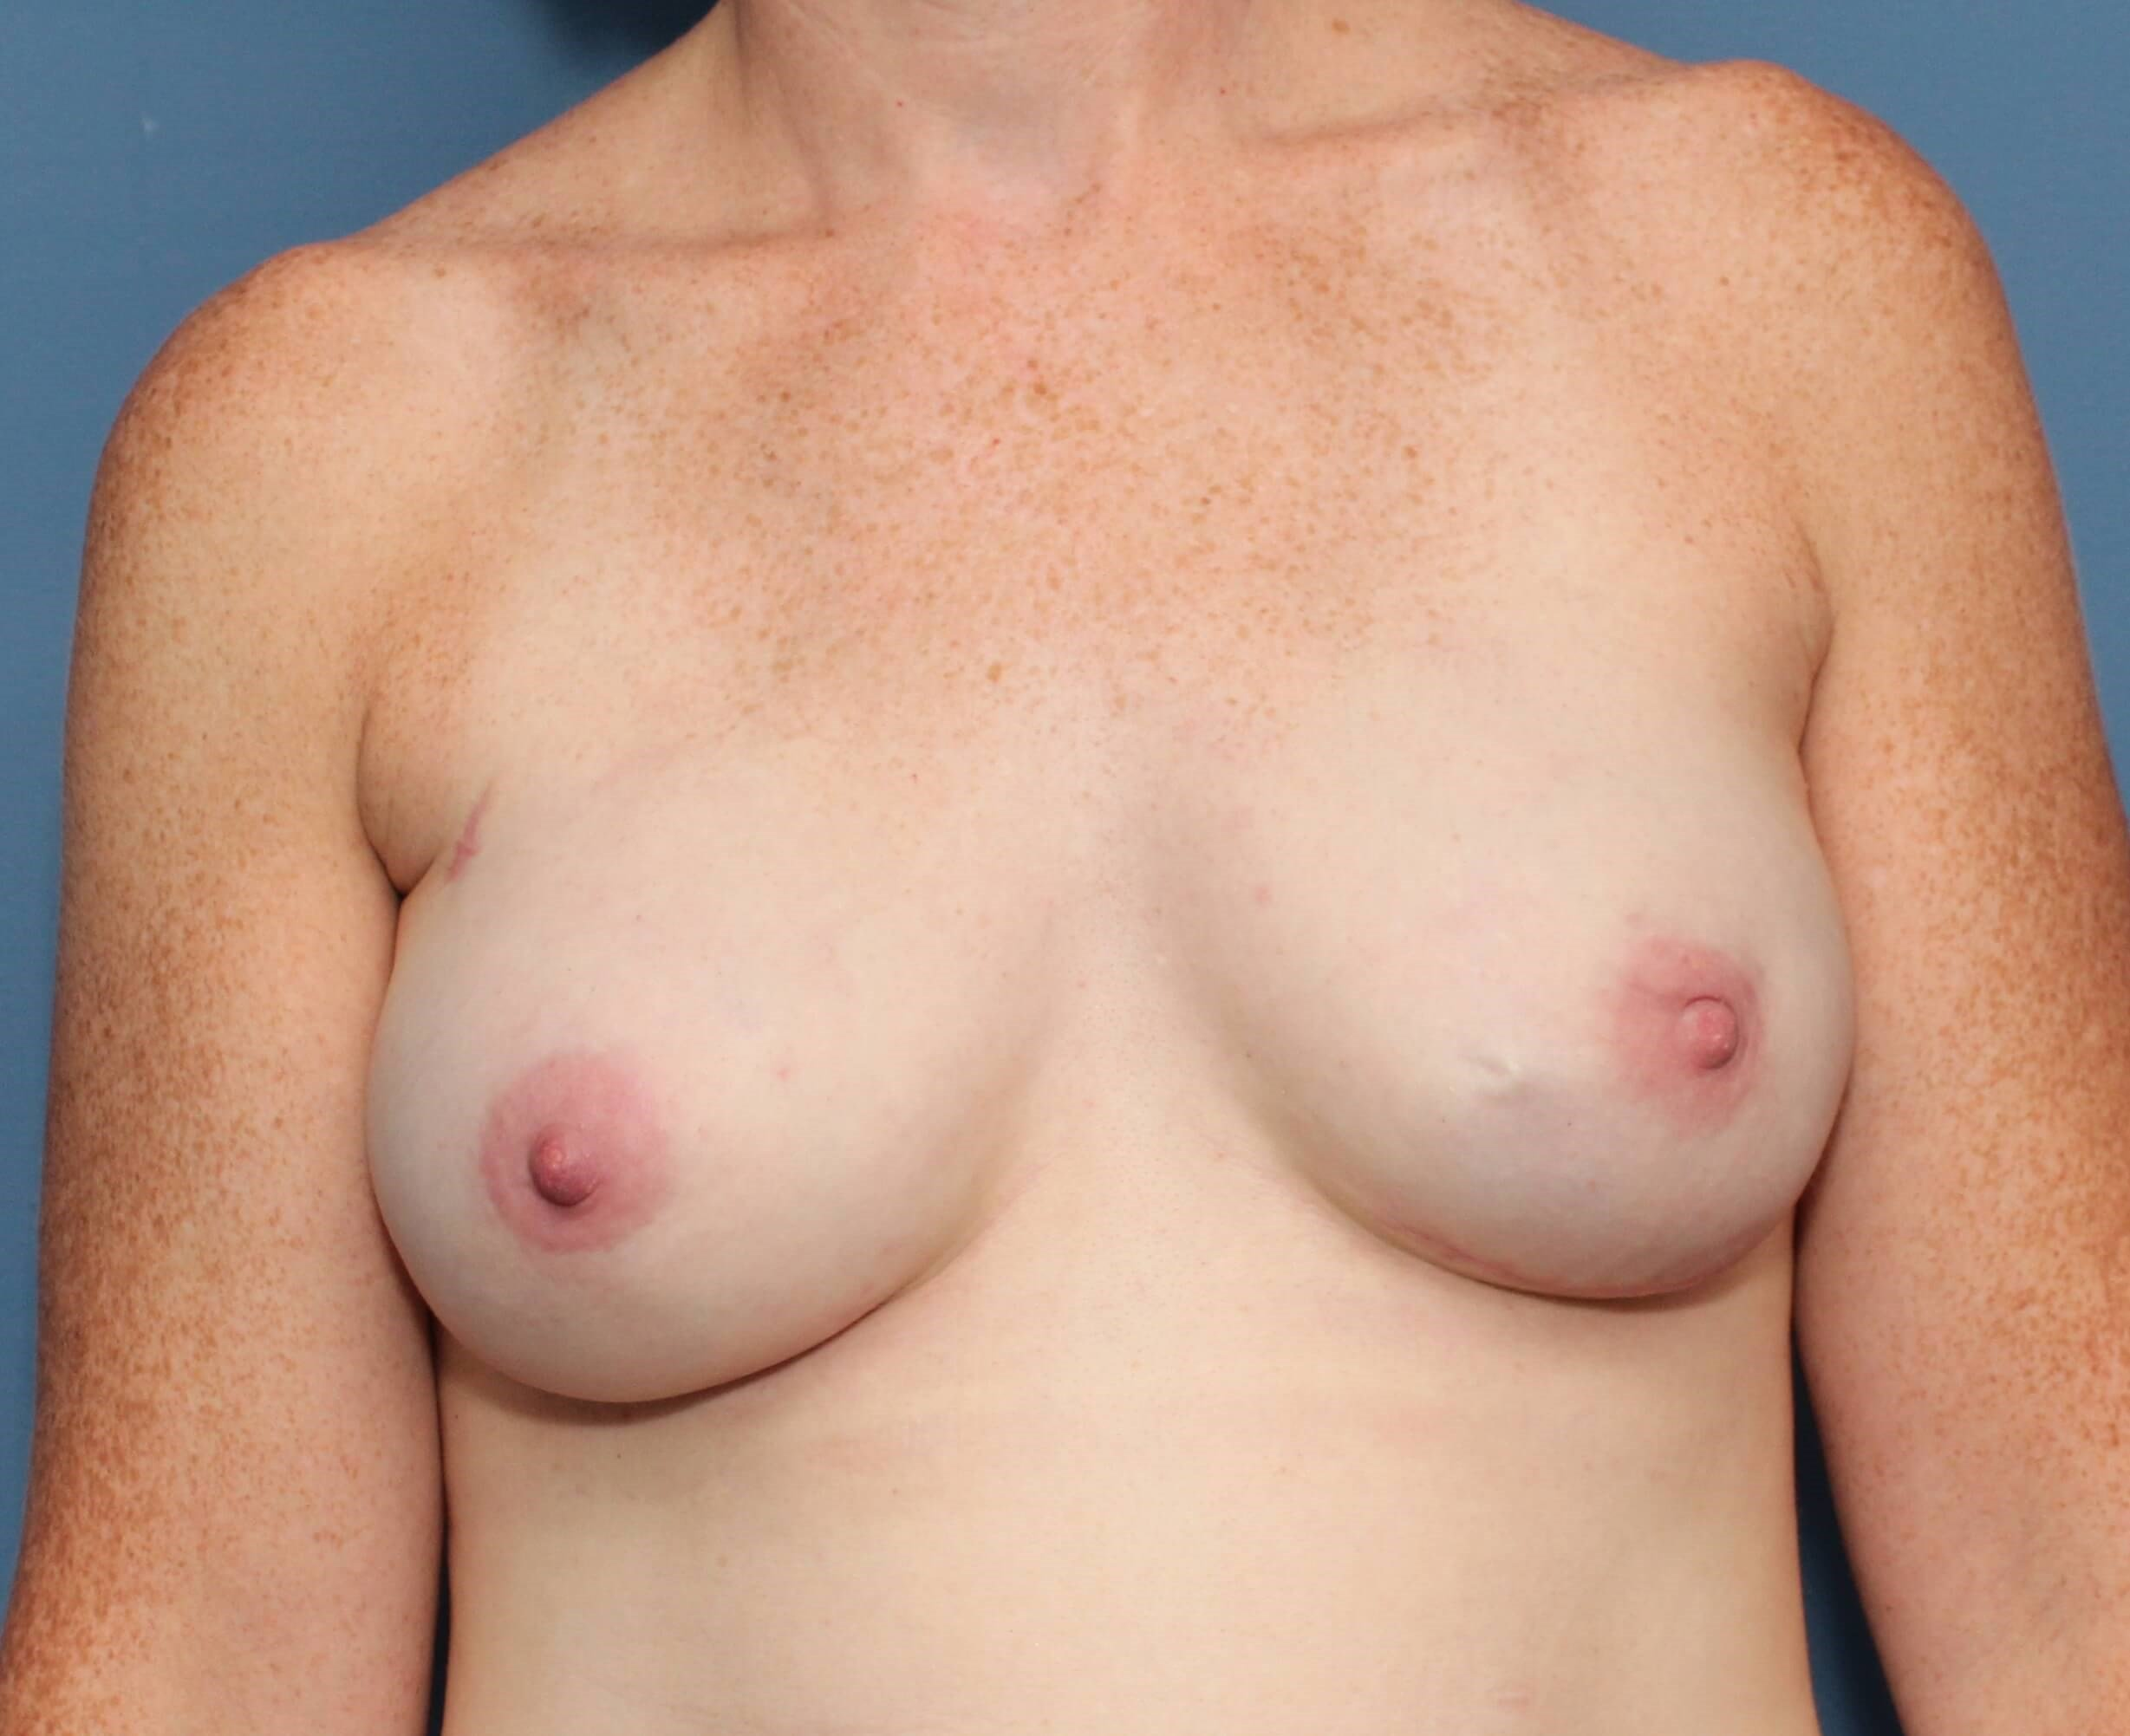 OneStage Breast Reconstruction 3 months postop